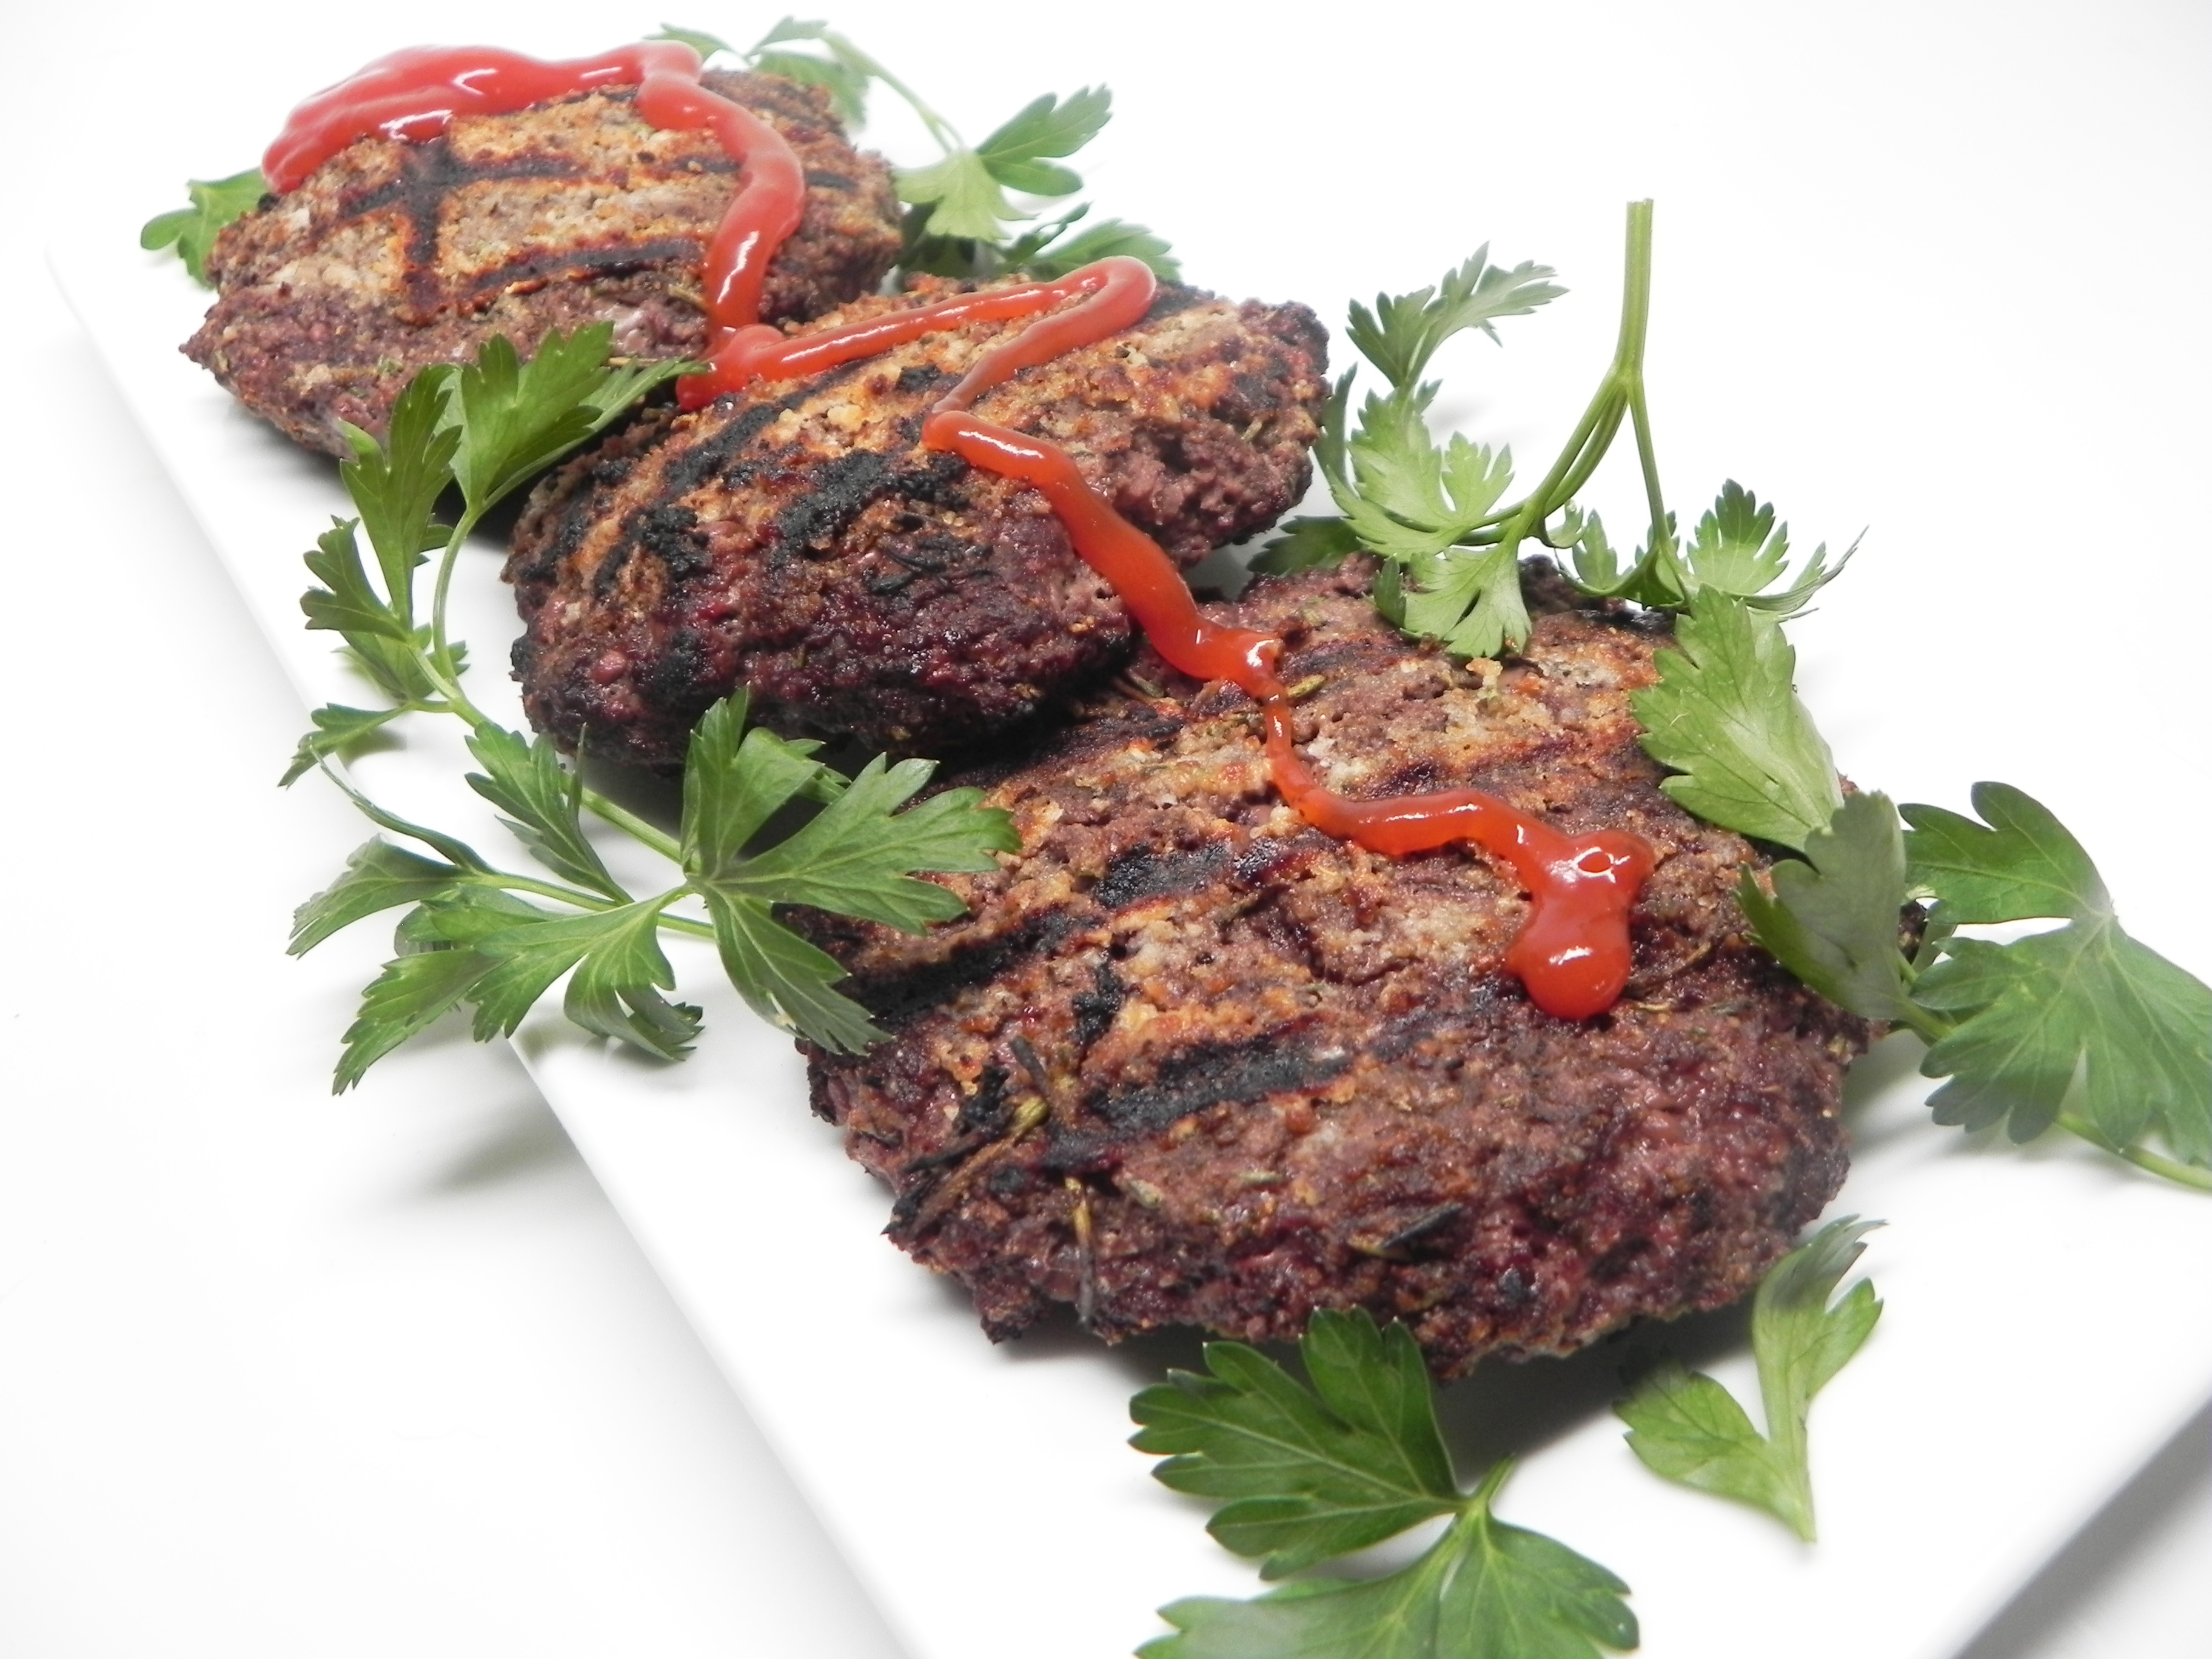 Rosemary-Crusted Oxtail Burger